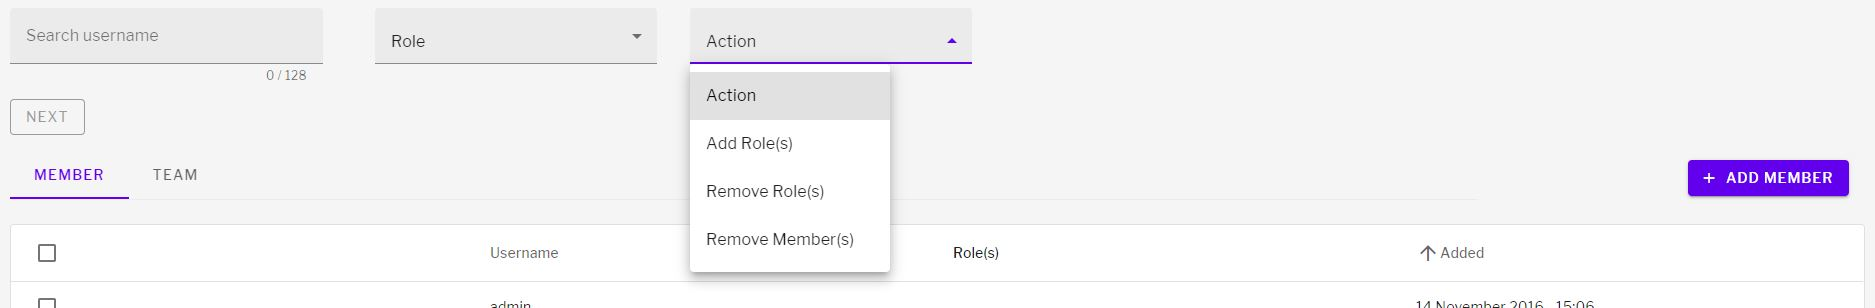 Actions to take for users on sections including add or remove role and add members